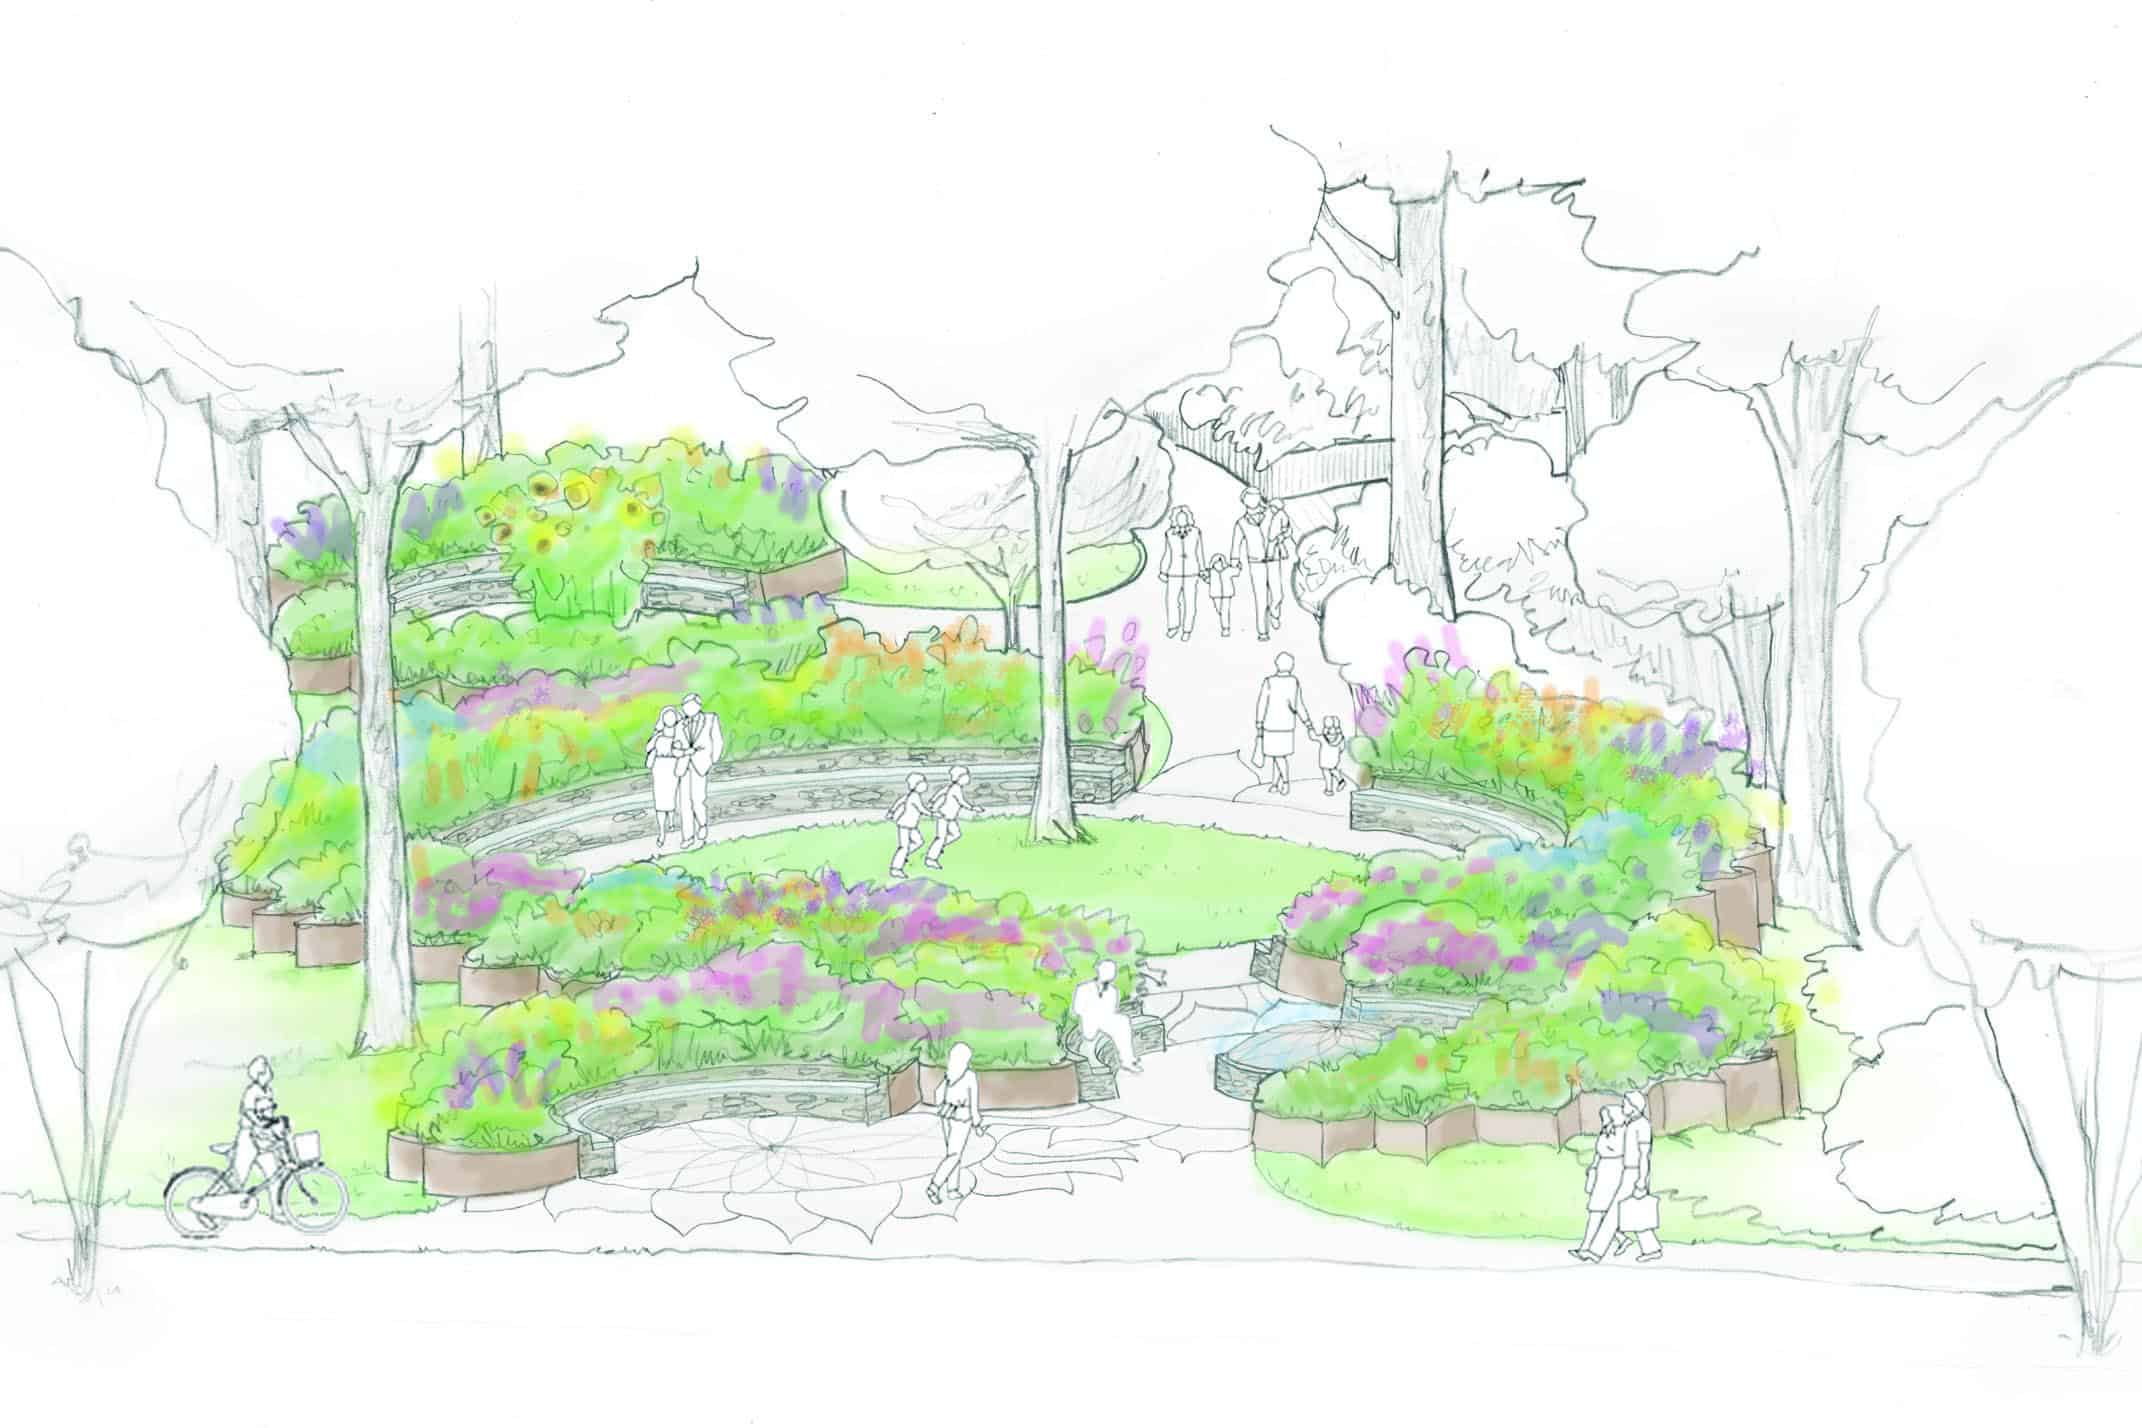 Landscape Design for a Greenville, SC, Public Park: Part Two